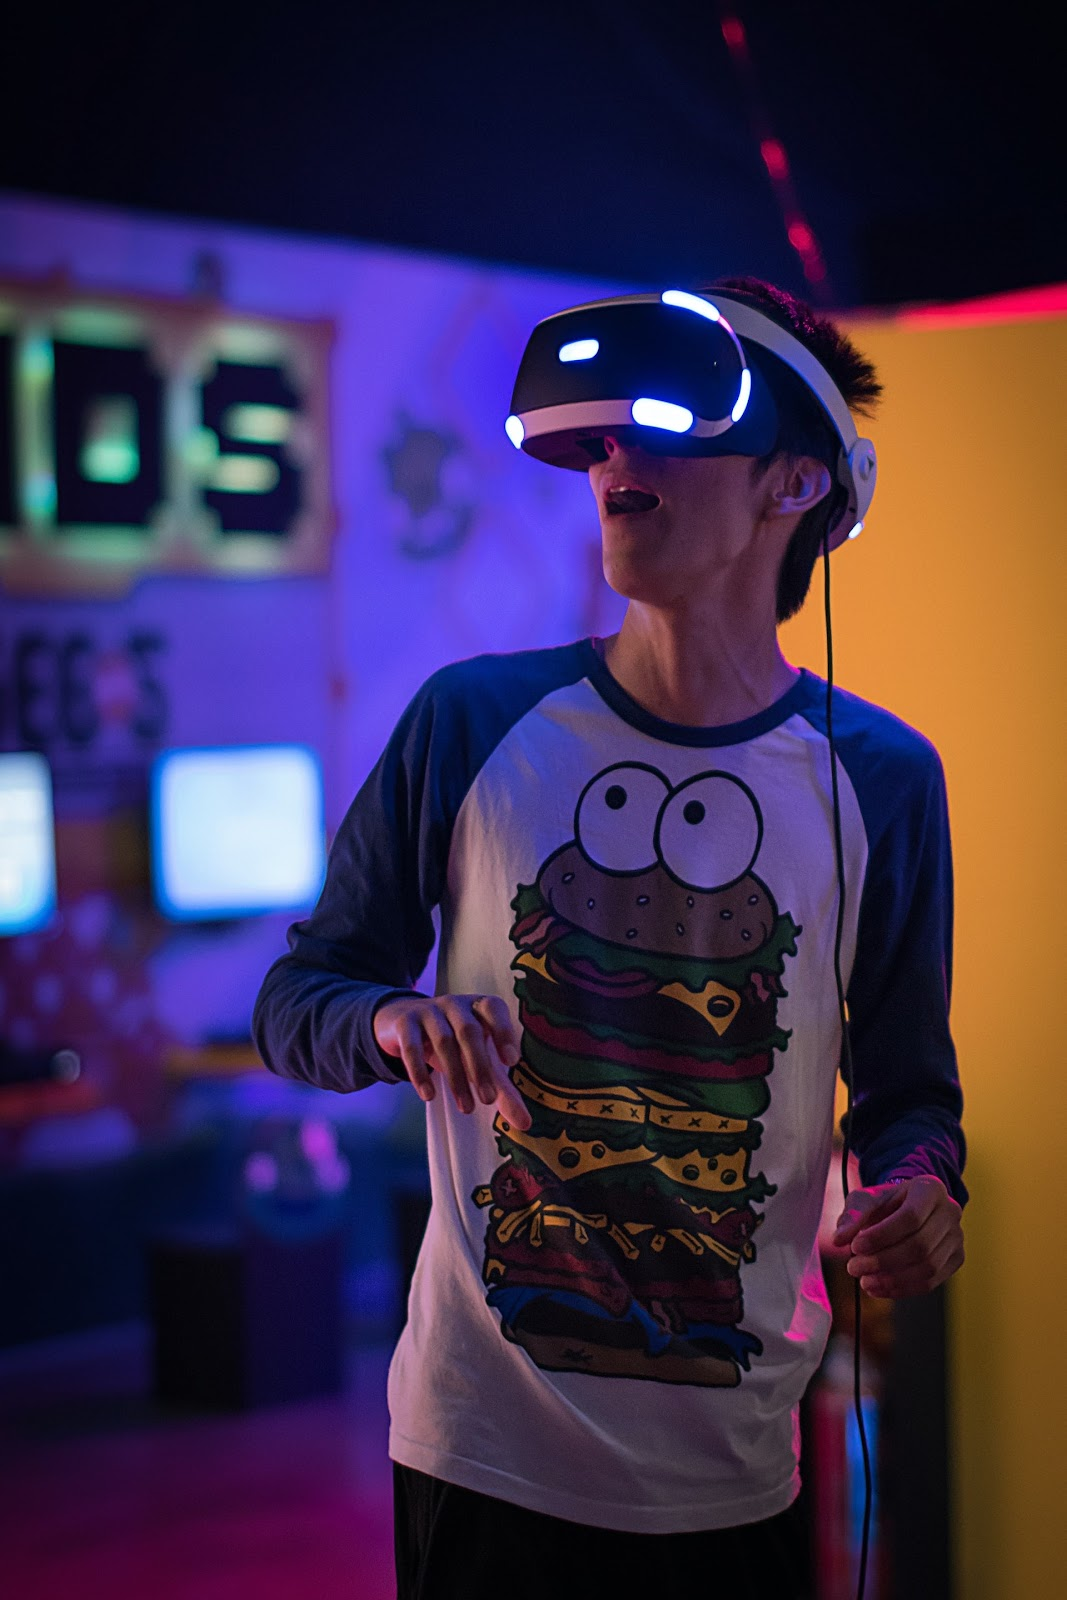 A boy wearing VR goggles, playing a game, to stay fit while also having fun